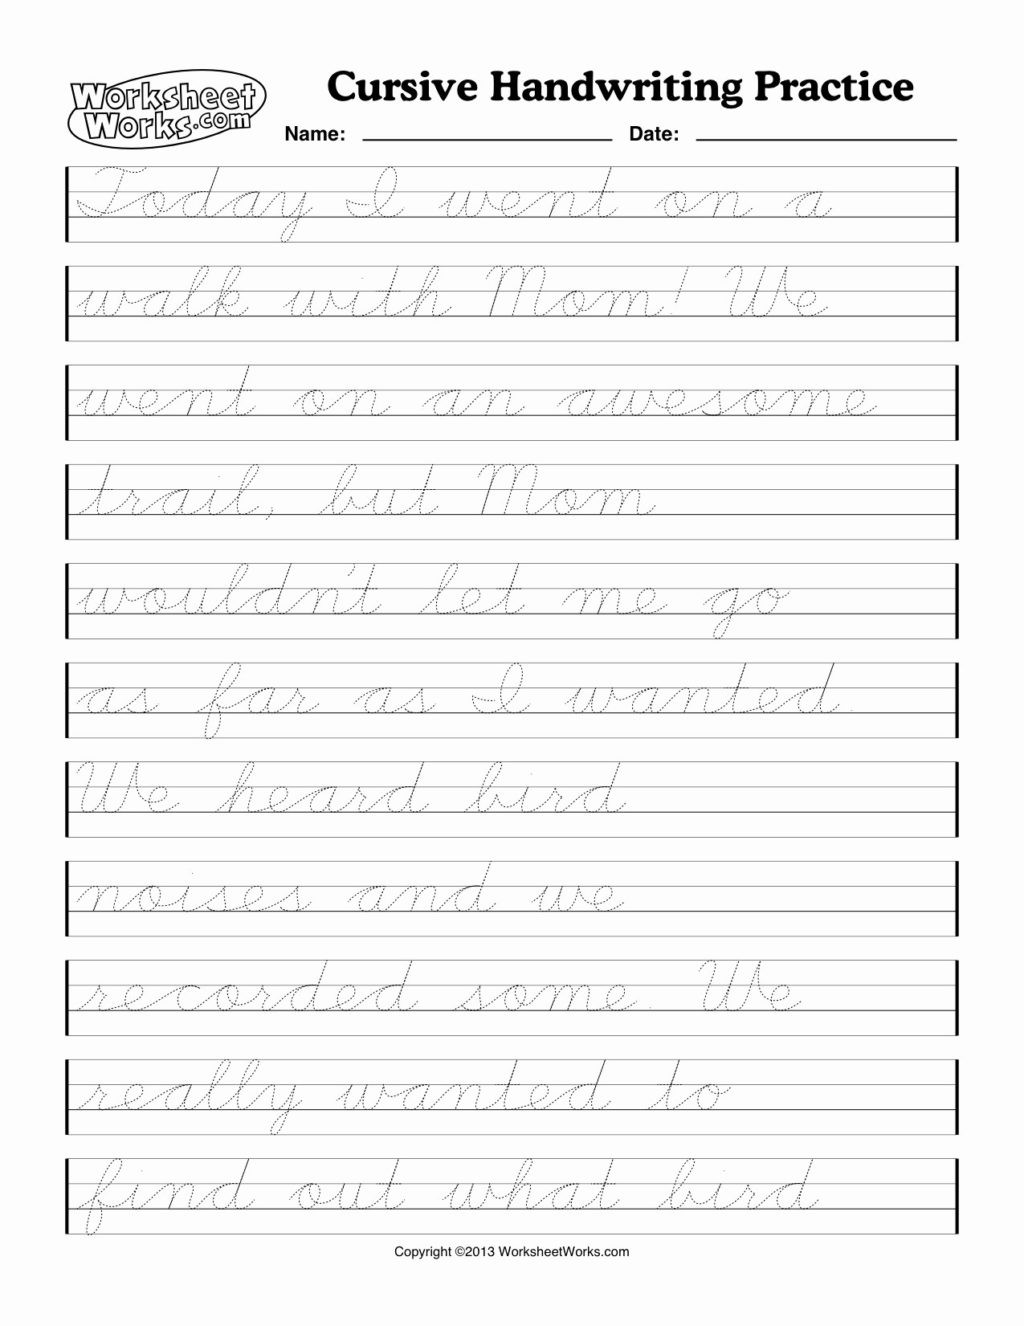 Paragraph Writing Practice Worksheets Math Worksheet How toe Cursive Writing Worksheets for 3rd